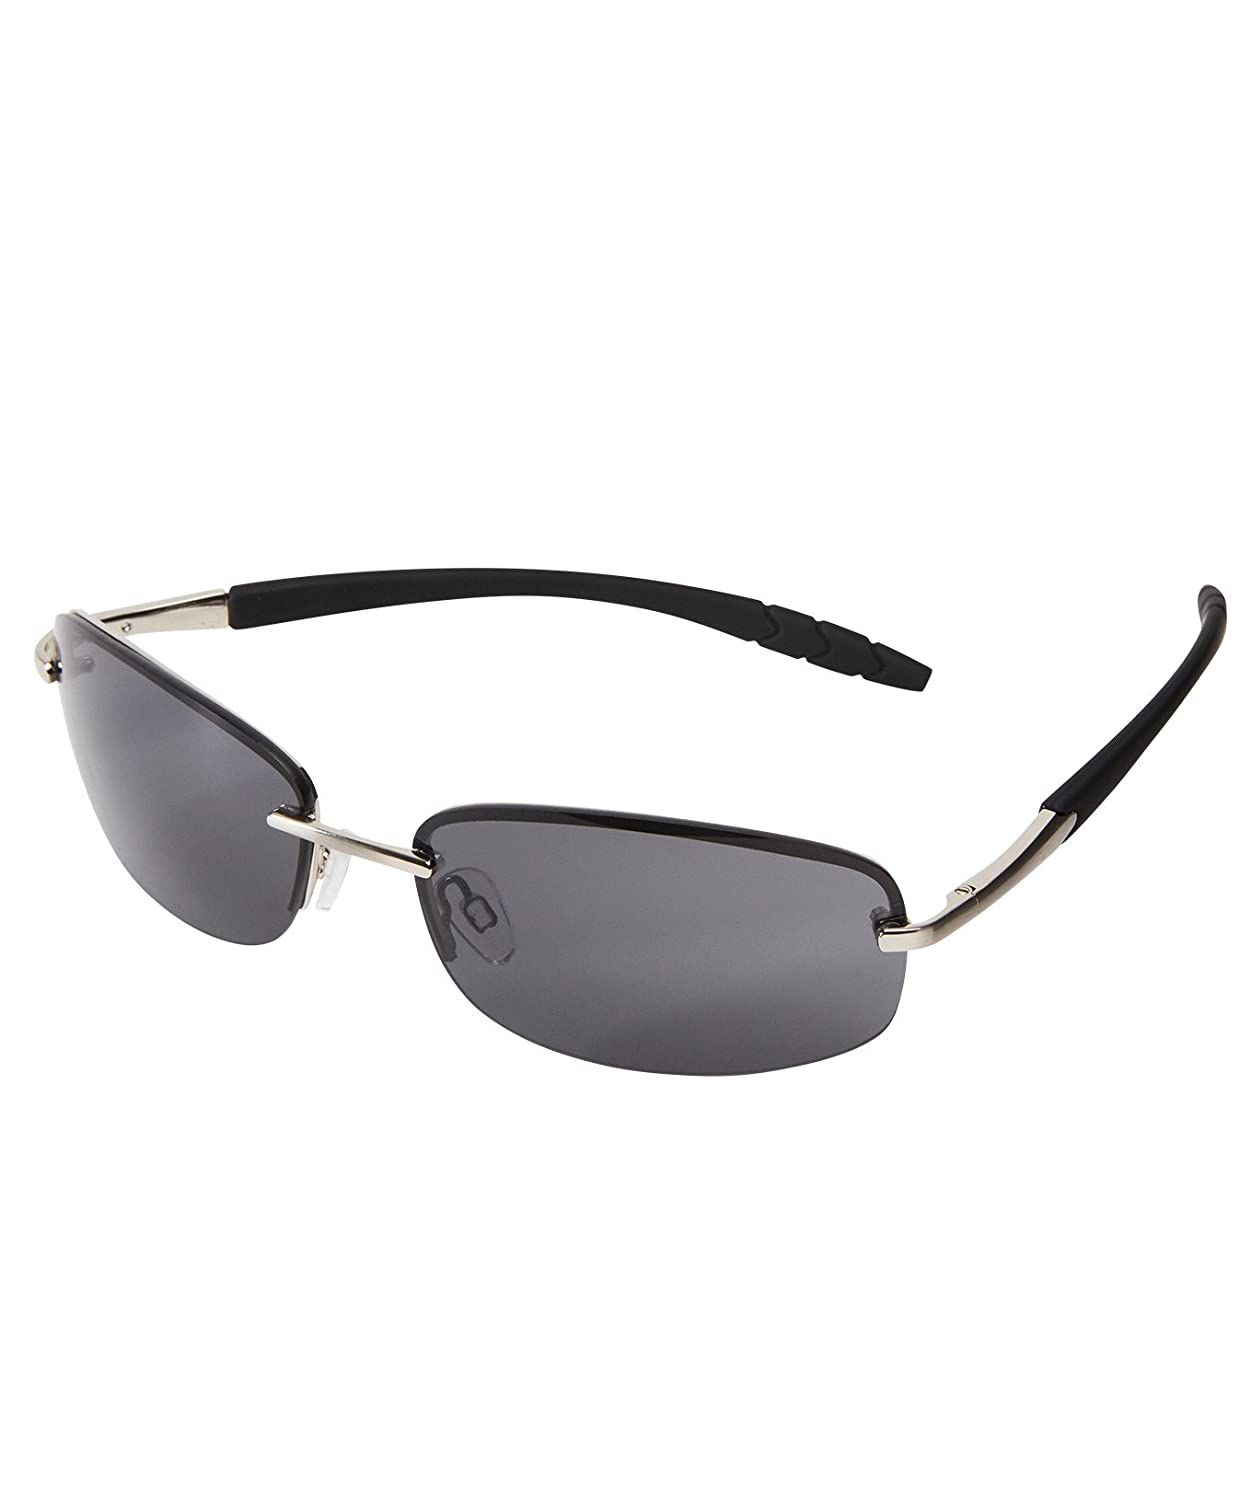 Joe Browns Rimless Wrap Style Sunglasses with UV Protection Black